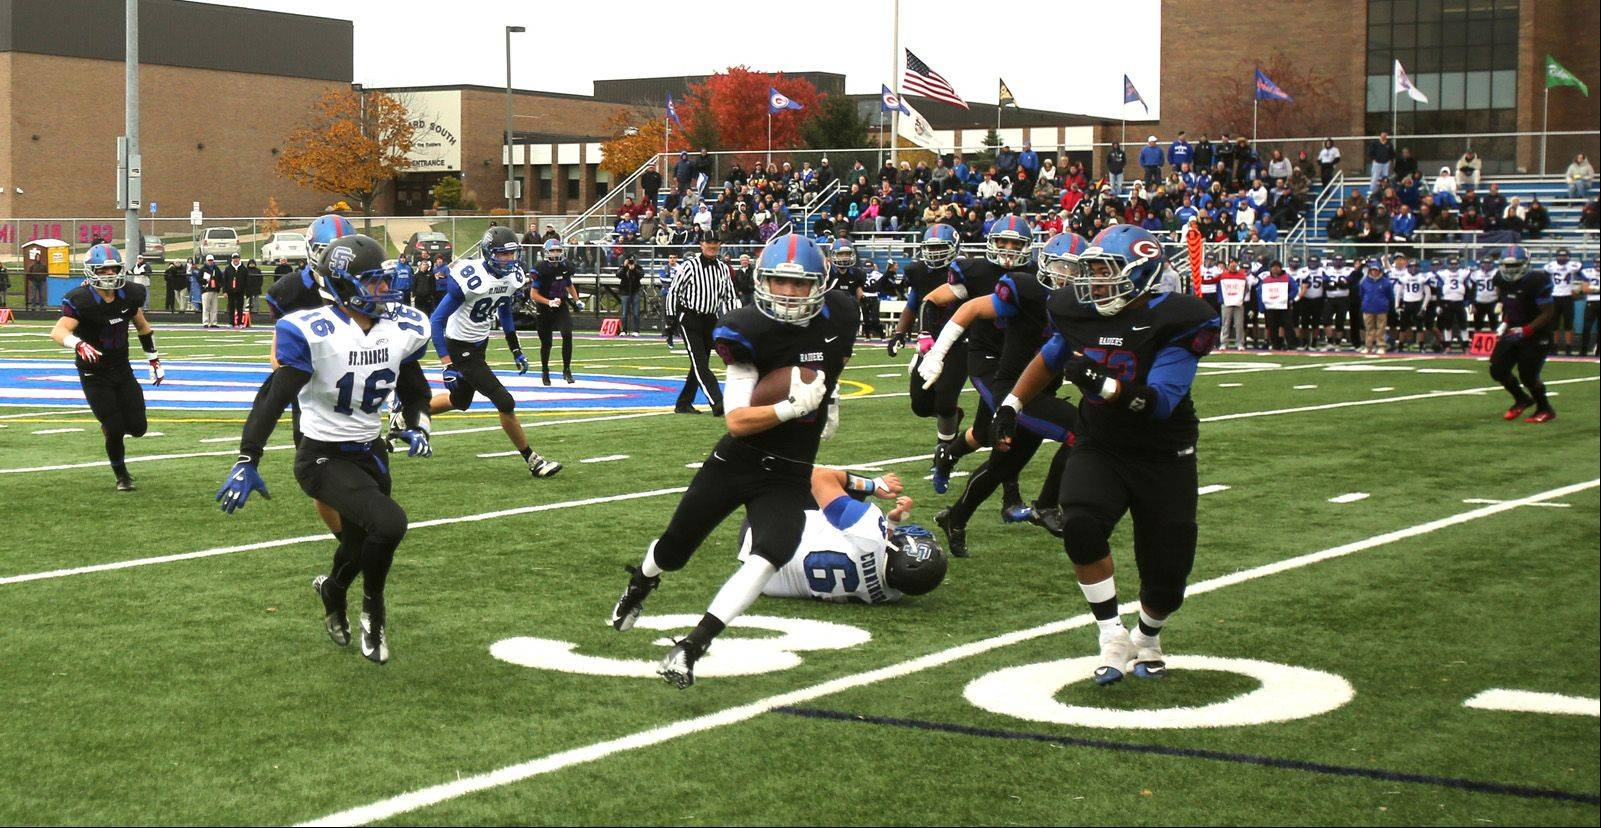 Glenbard South's Jack Curtis looks for yardage after intercepting a late fourth quarter pass against St. Francis.